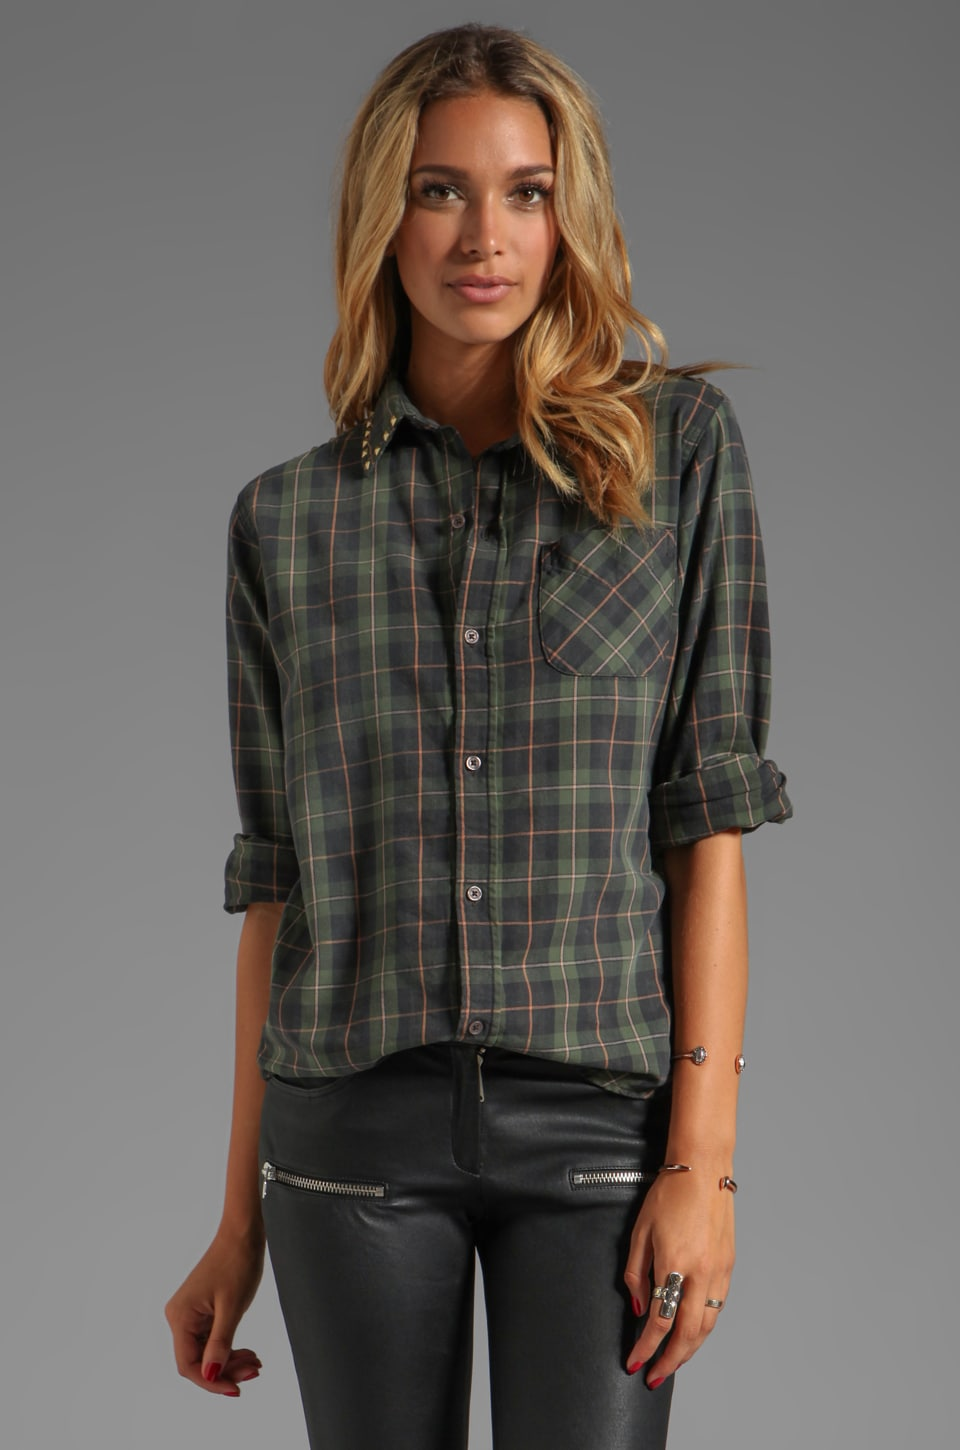 Current/Elliott The Prep School Shirt in Forge Plaid w/ Studs